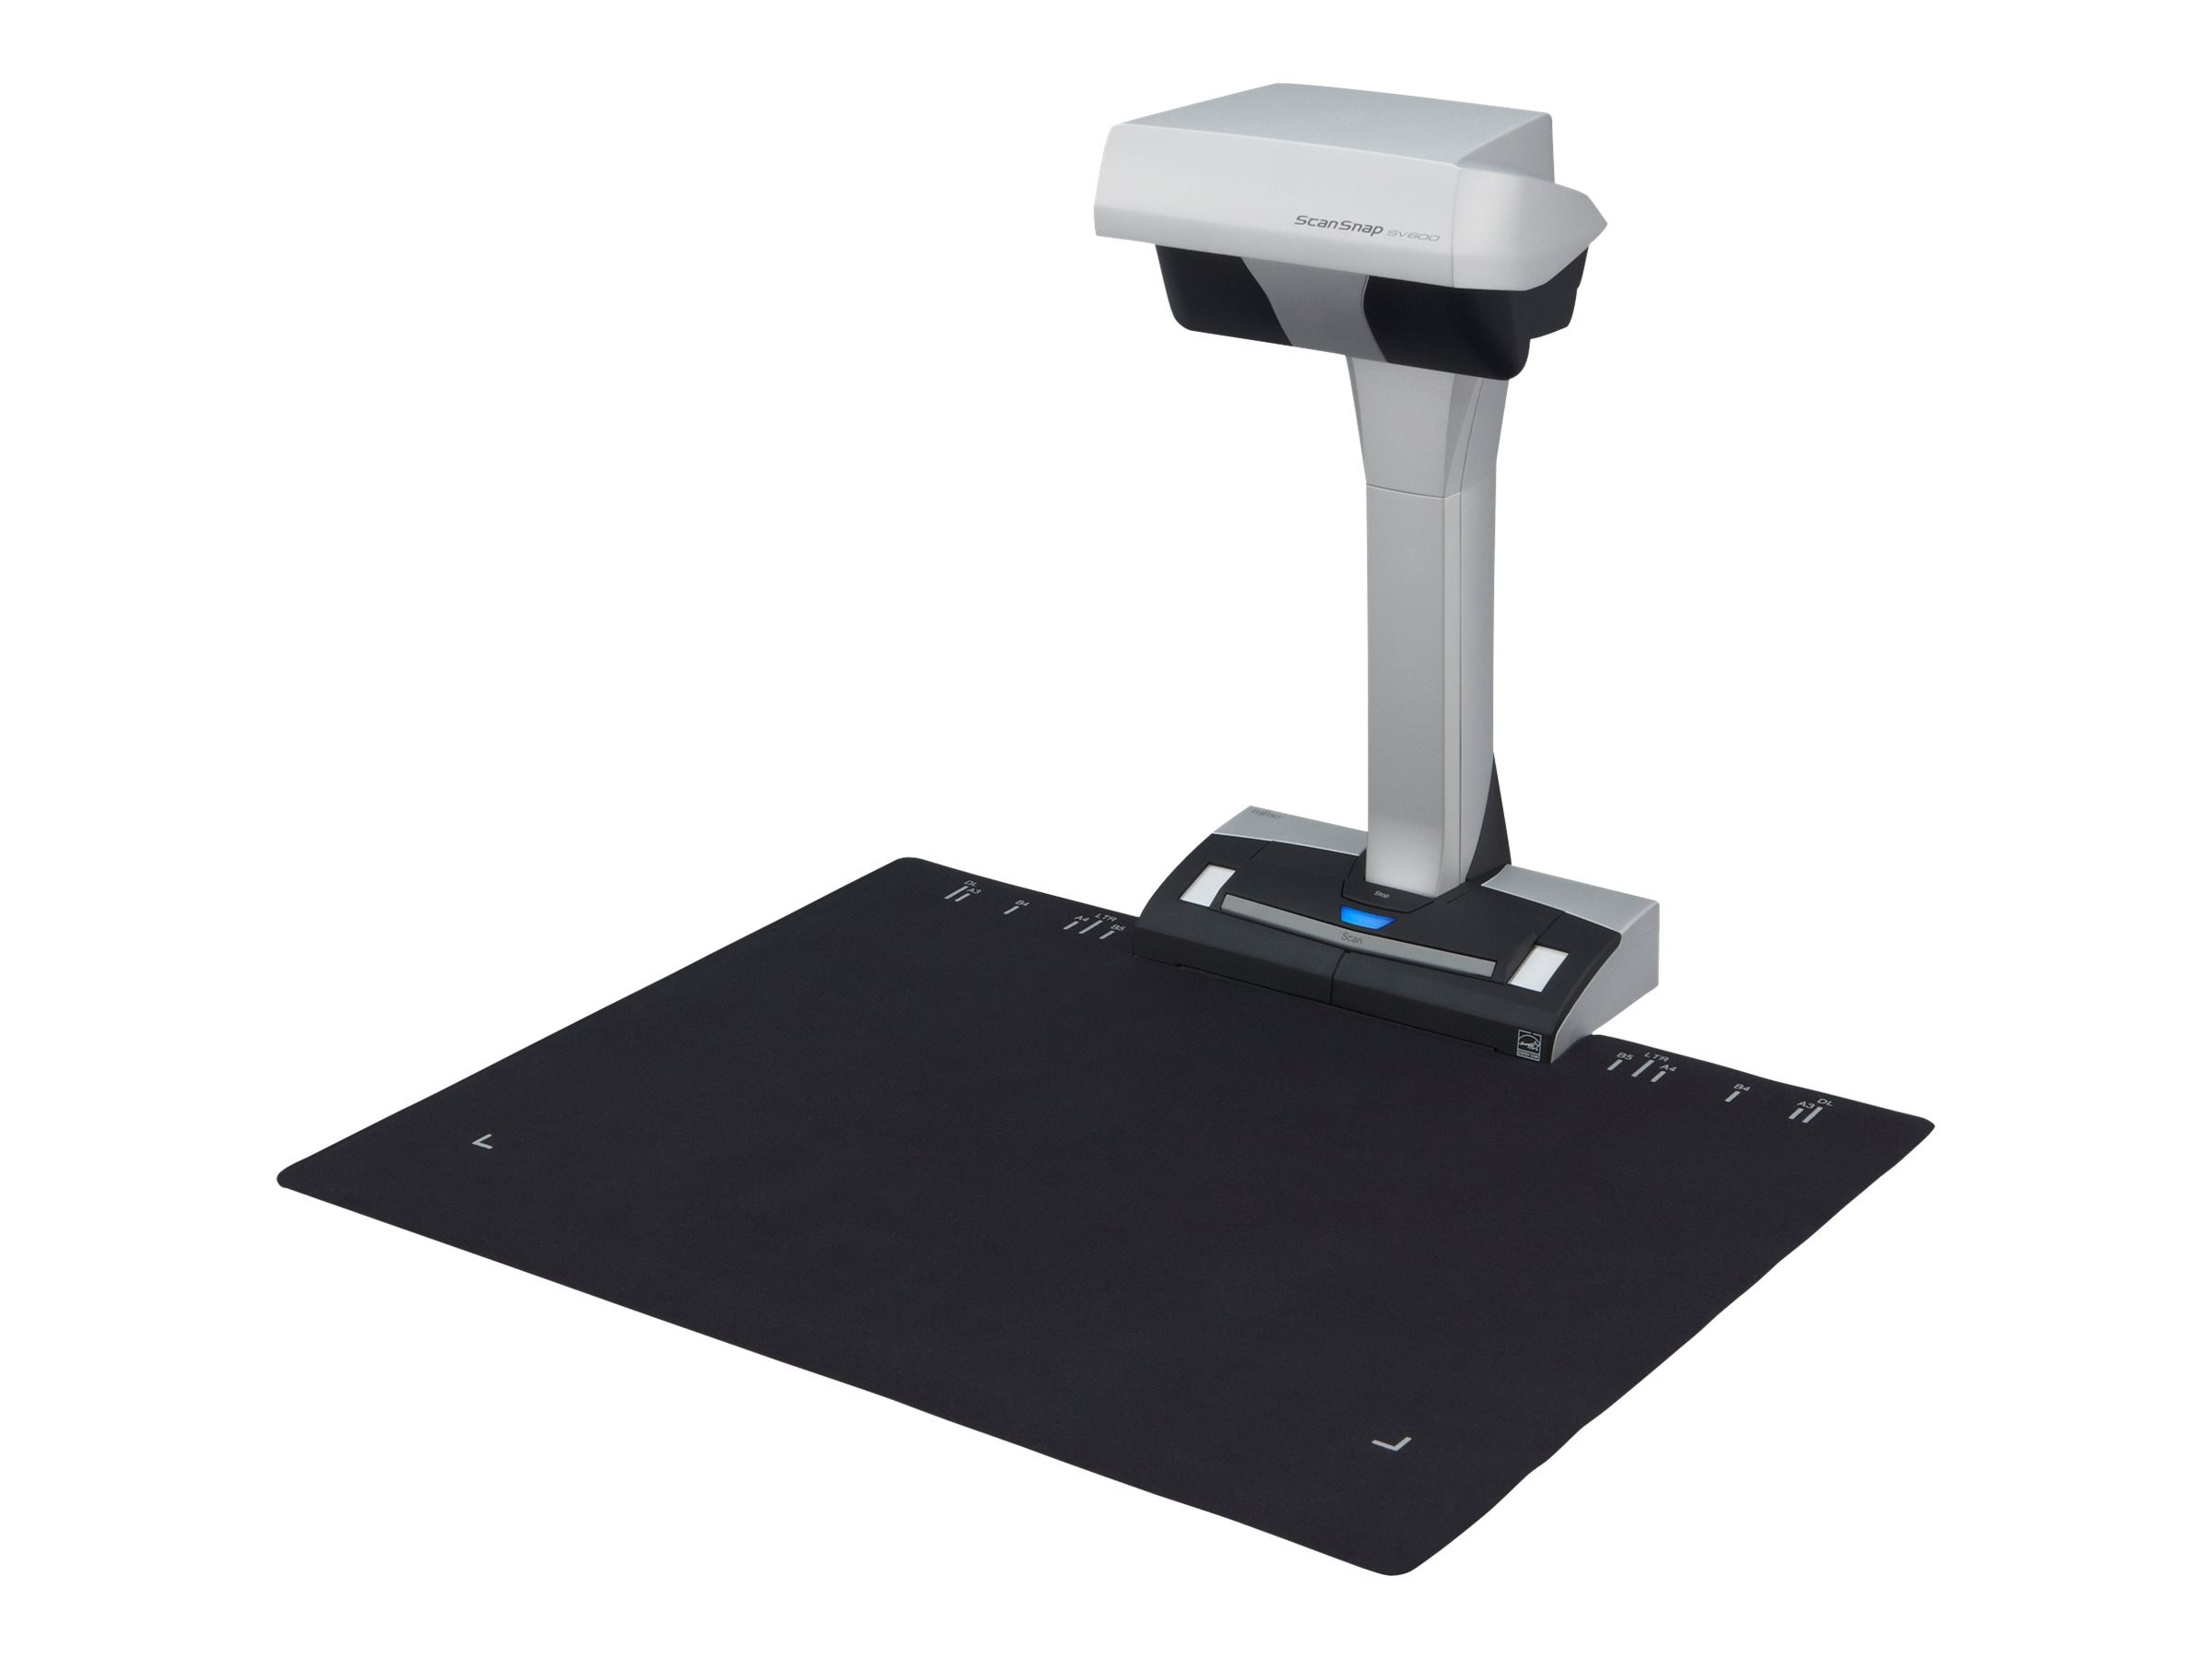 Refurb. Fujitsu ScanSnap SV600 Contactless Image Scanner